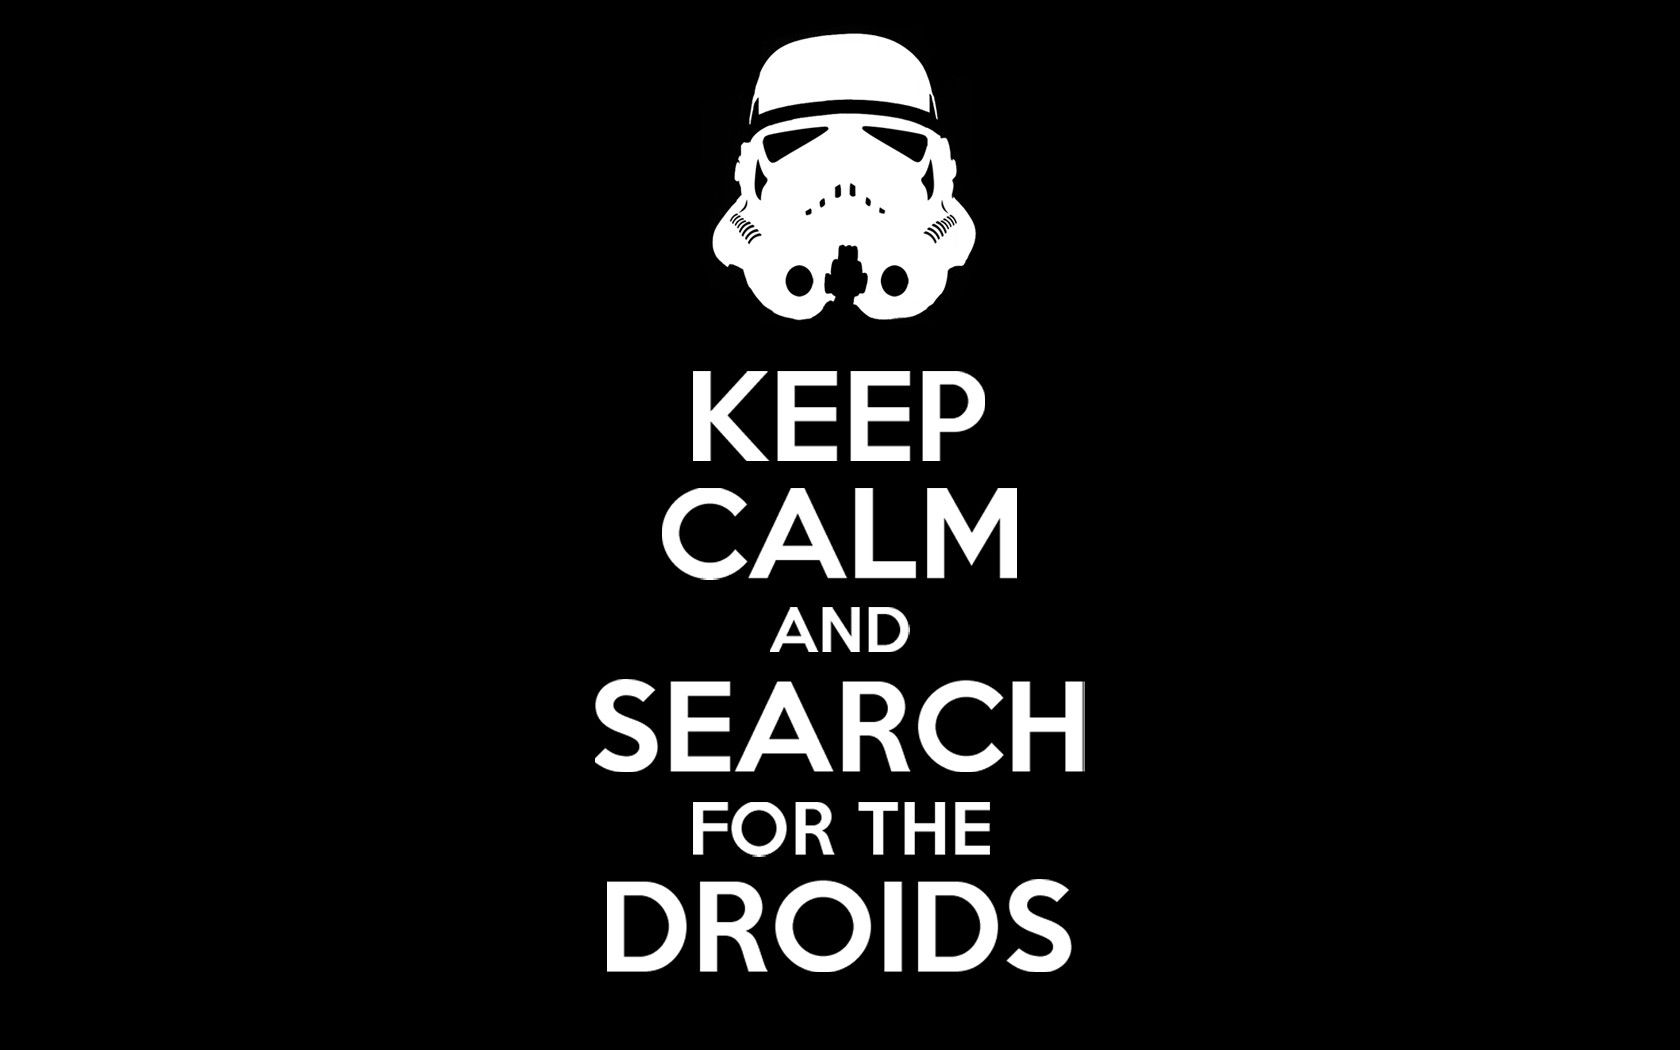 Funny Star Wars Backgrounds Wallpapers HD Wallpapers